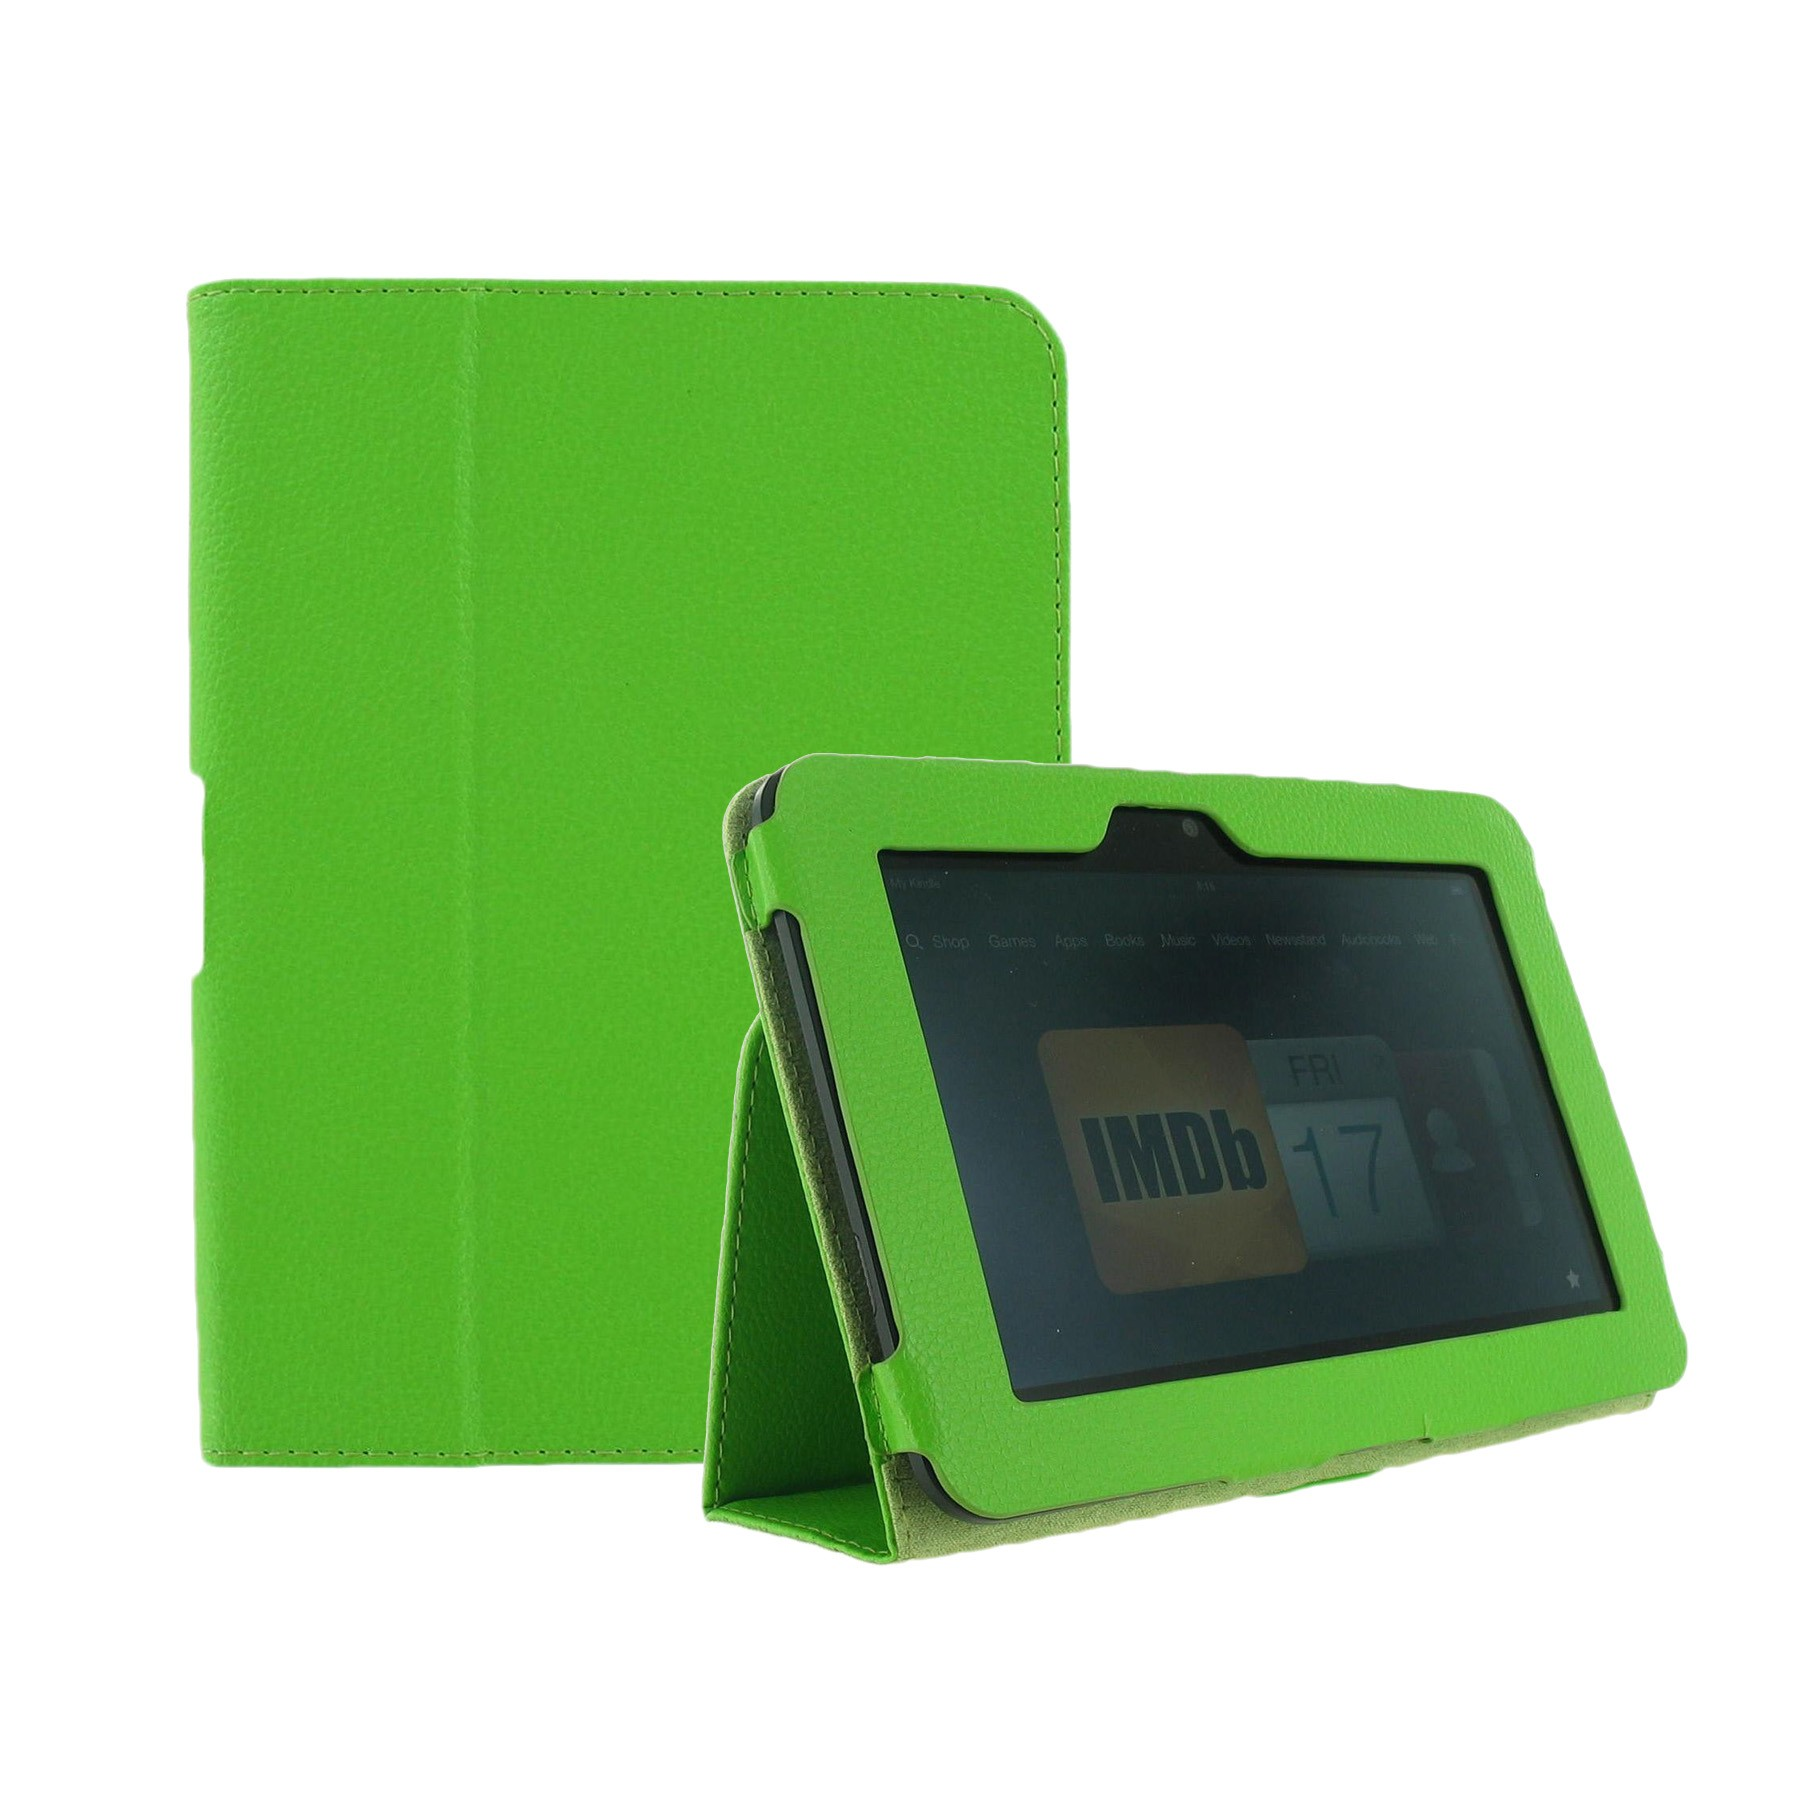 "Unlimited Cellular Leather Flip Book Case/Folio for Kindle Fire HD 7"" (2012 Version) - Green"